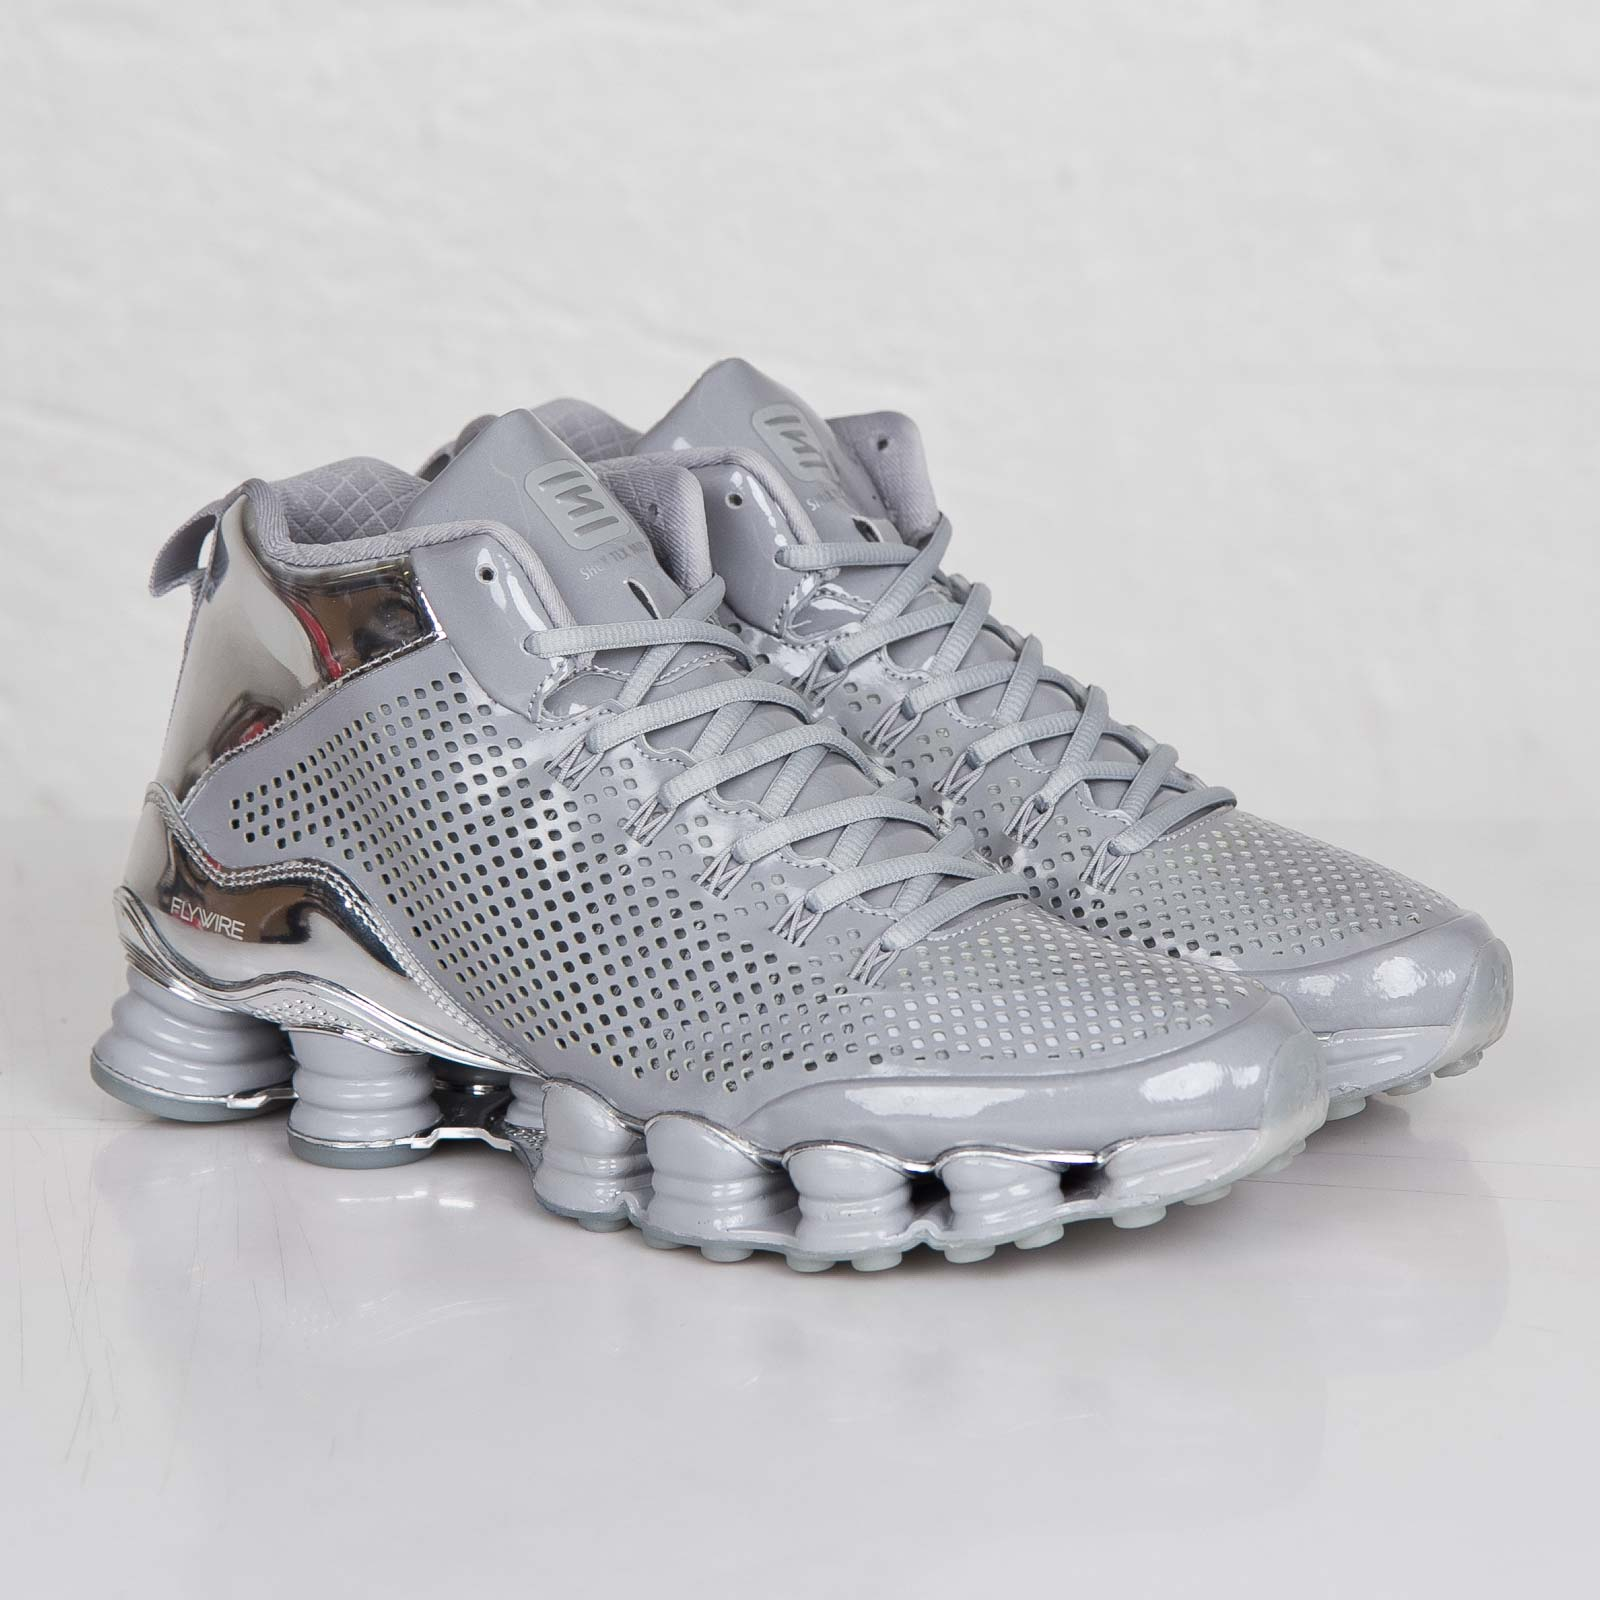 uk availability 06d0d fb3b3 Nike Shox TLX Mid SP